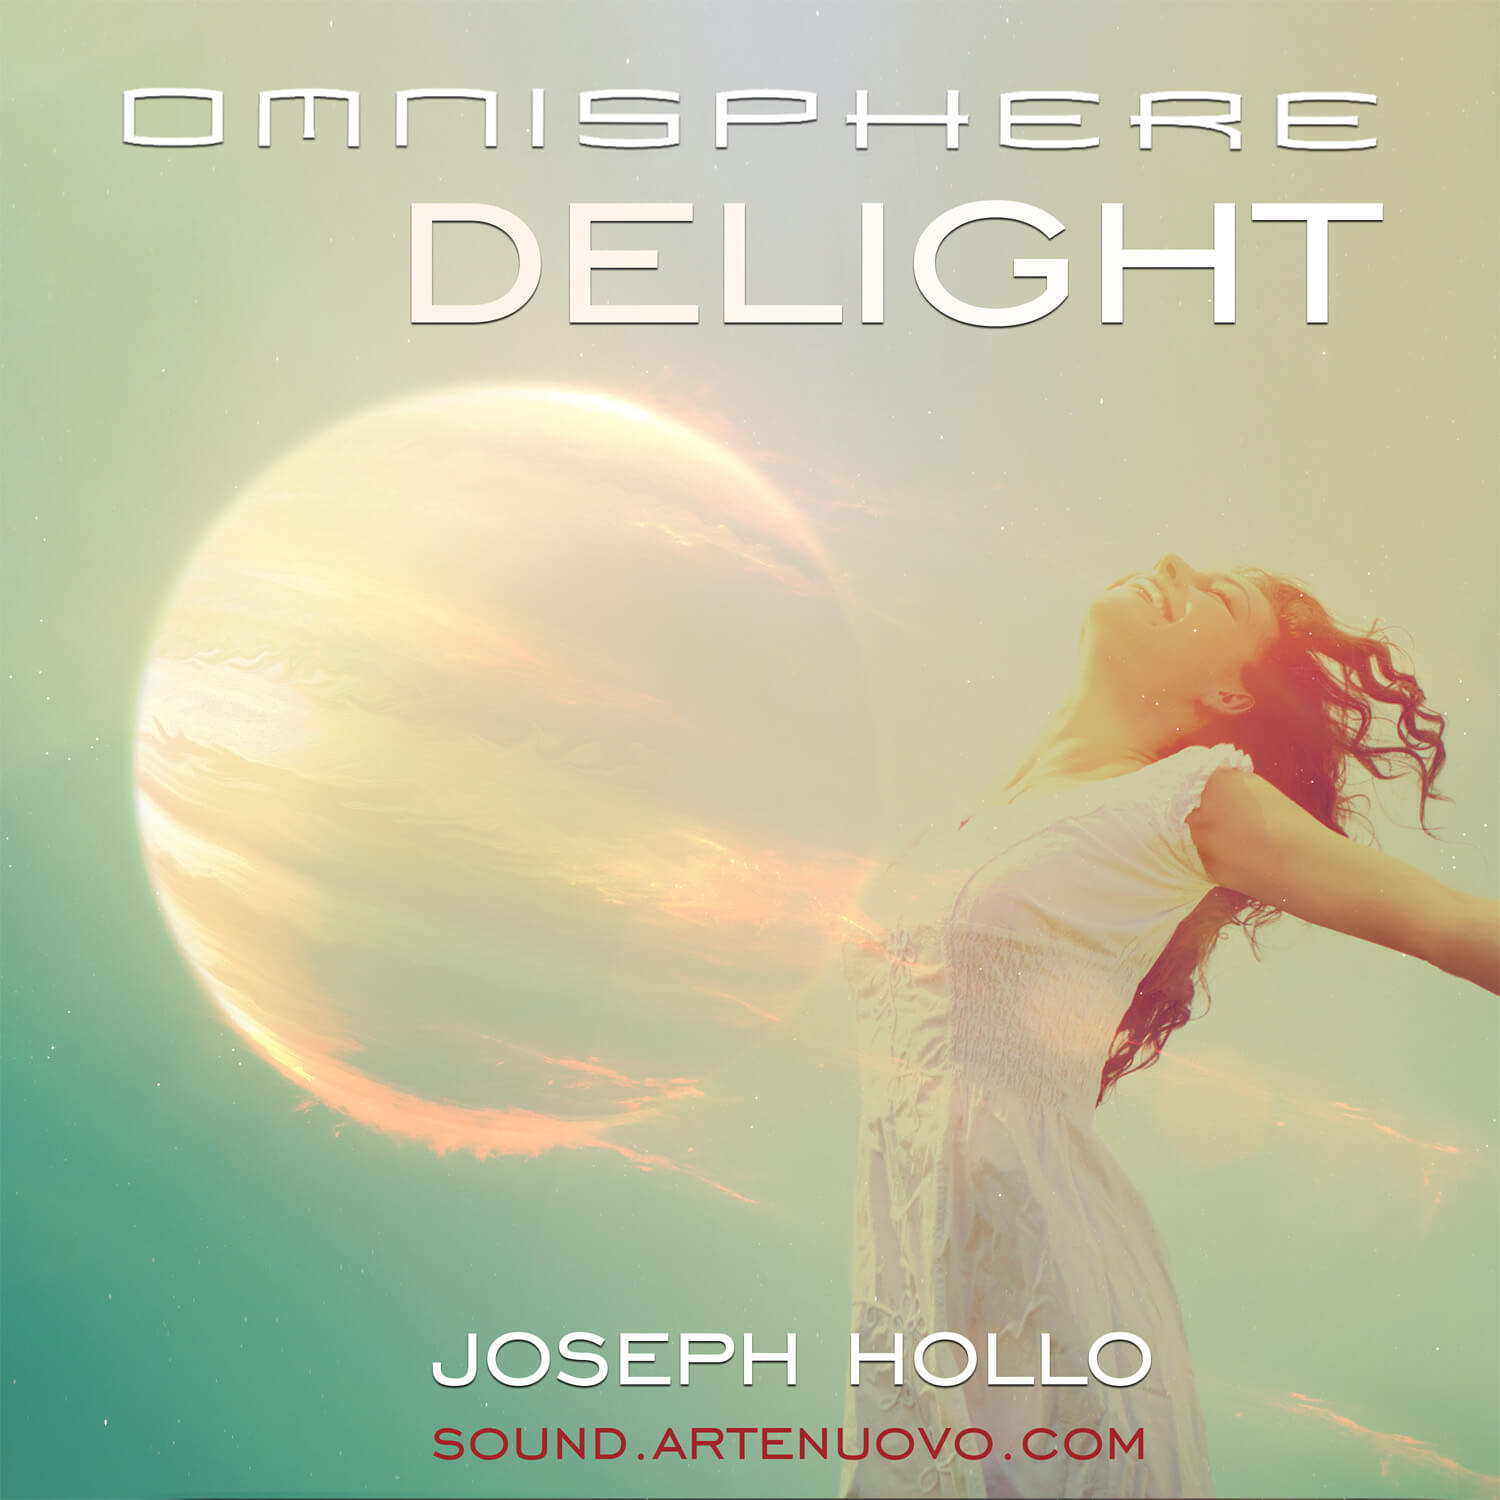 Delight for Omnisphere 2 by Joseph Hollo